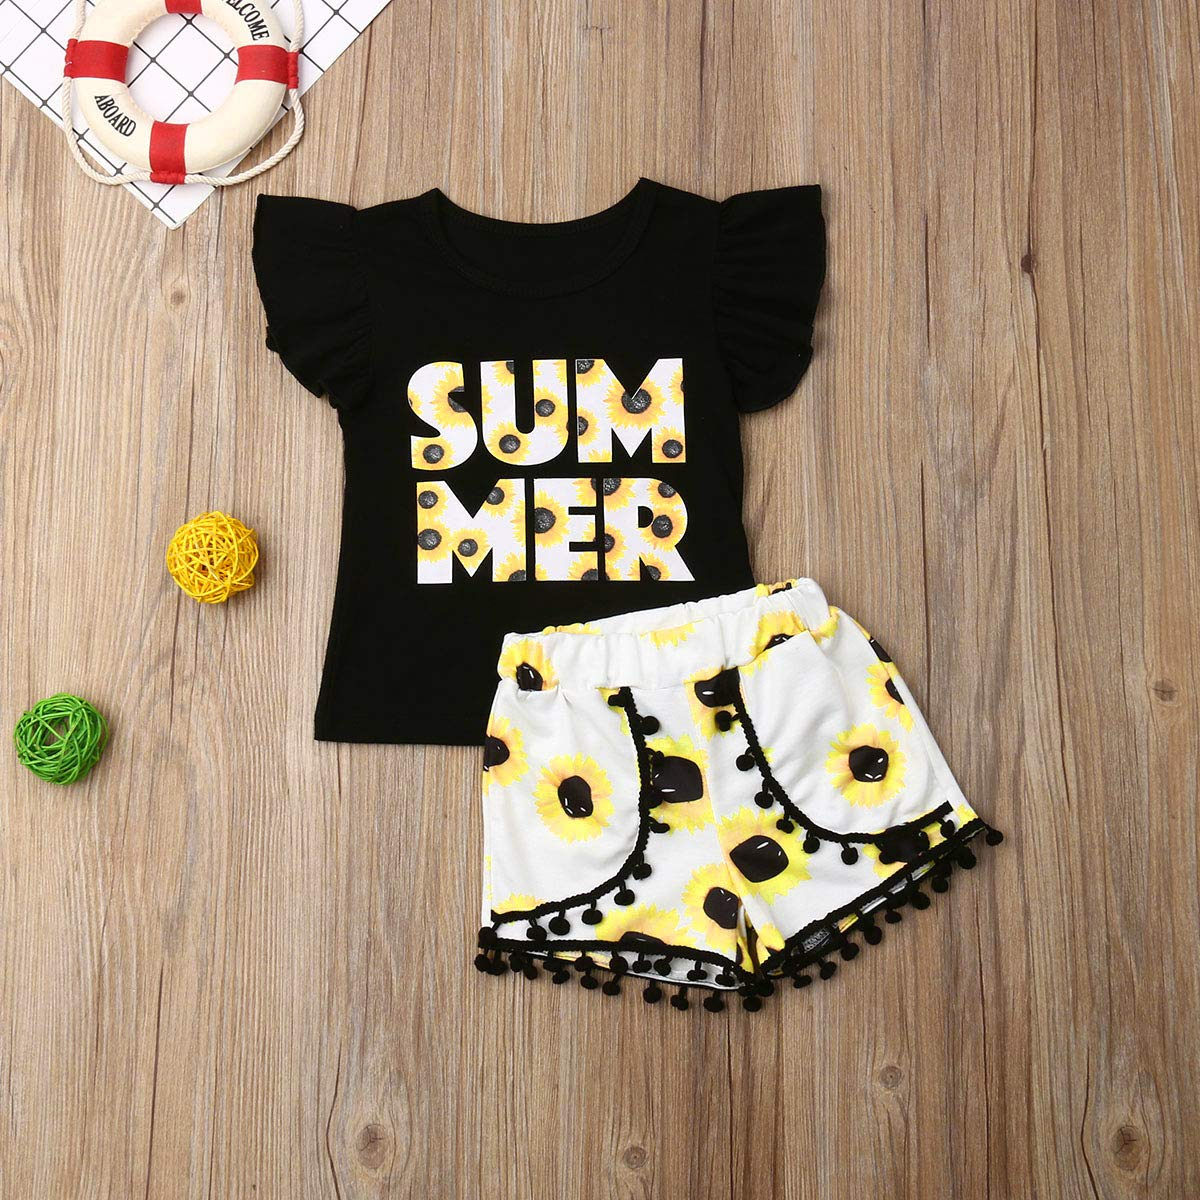 2Pcs//Set Toddler Kids Baby Girl Summer Short Sleeve T-Shirt Tops Floral Short Sets Outfits Clothes